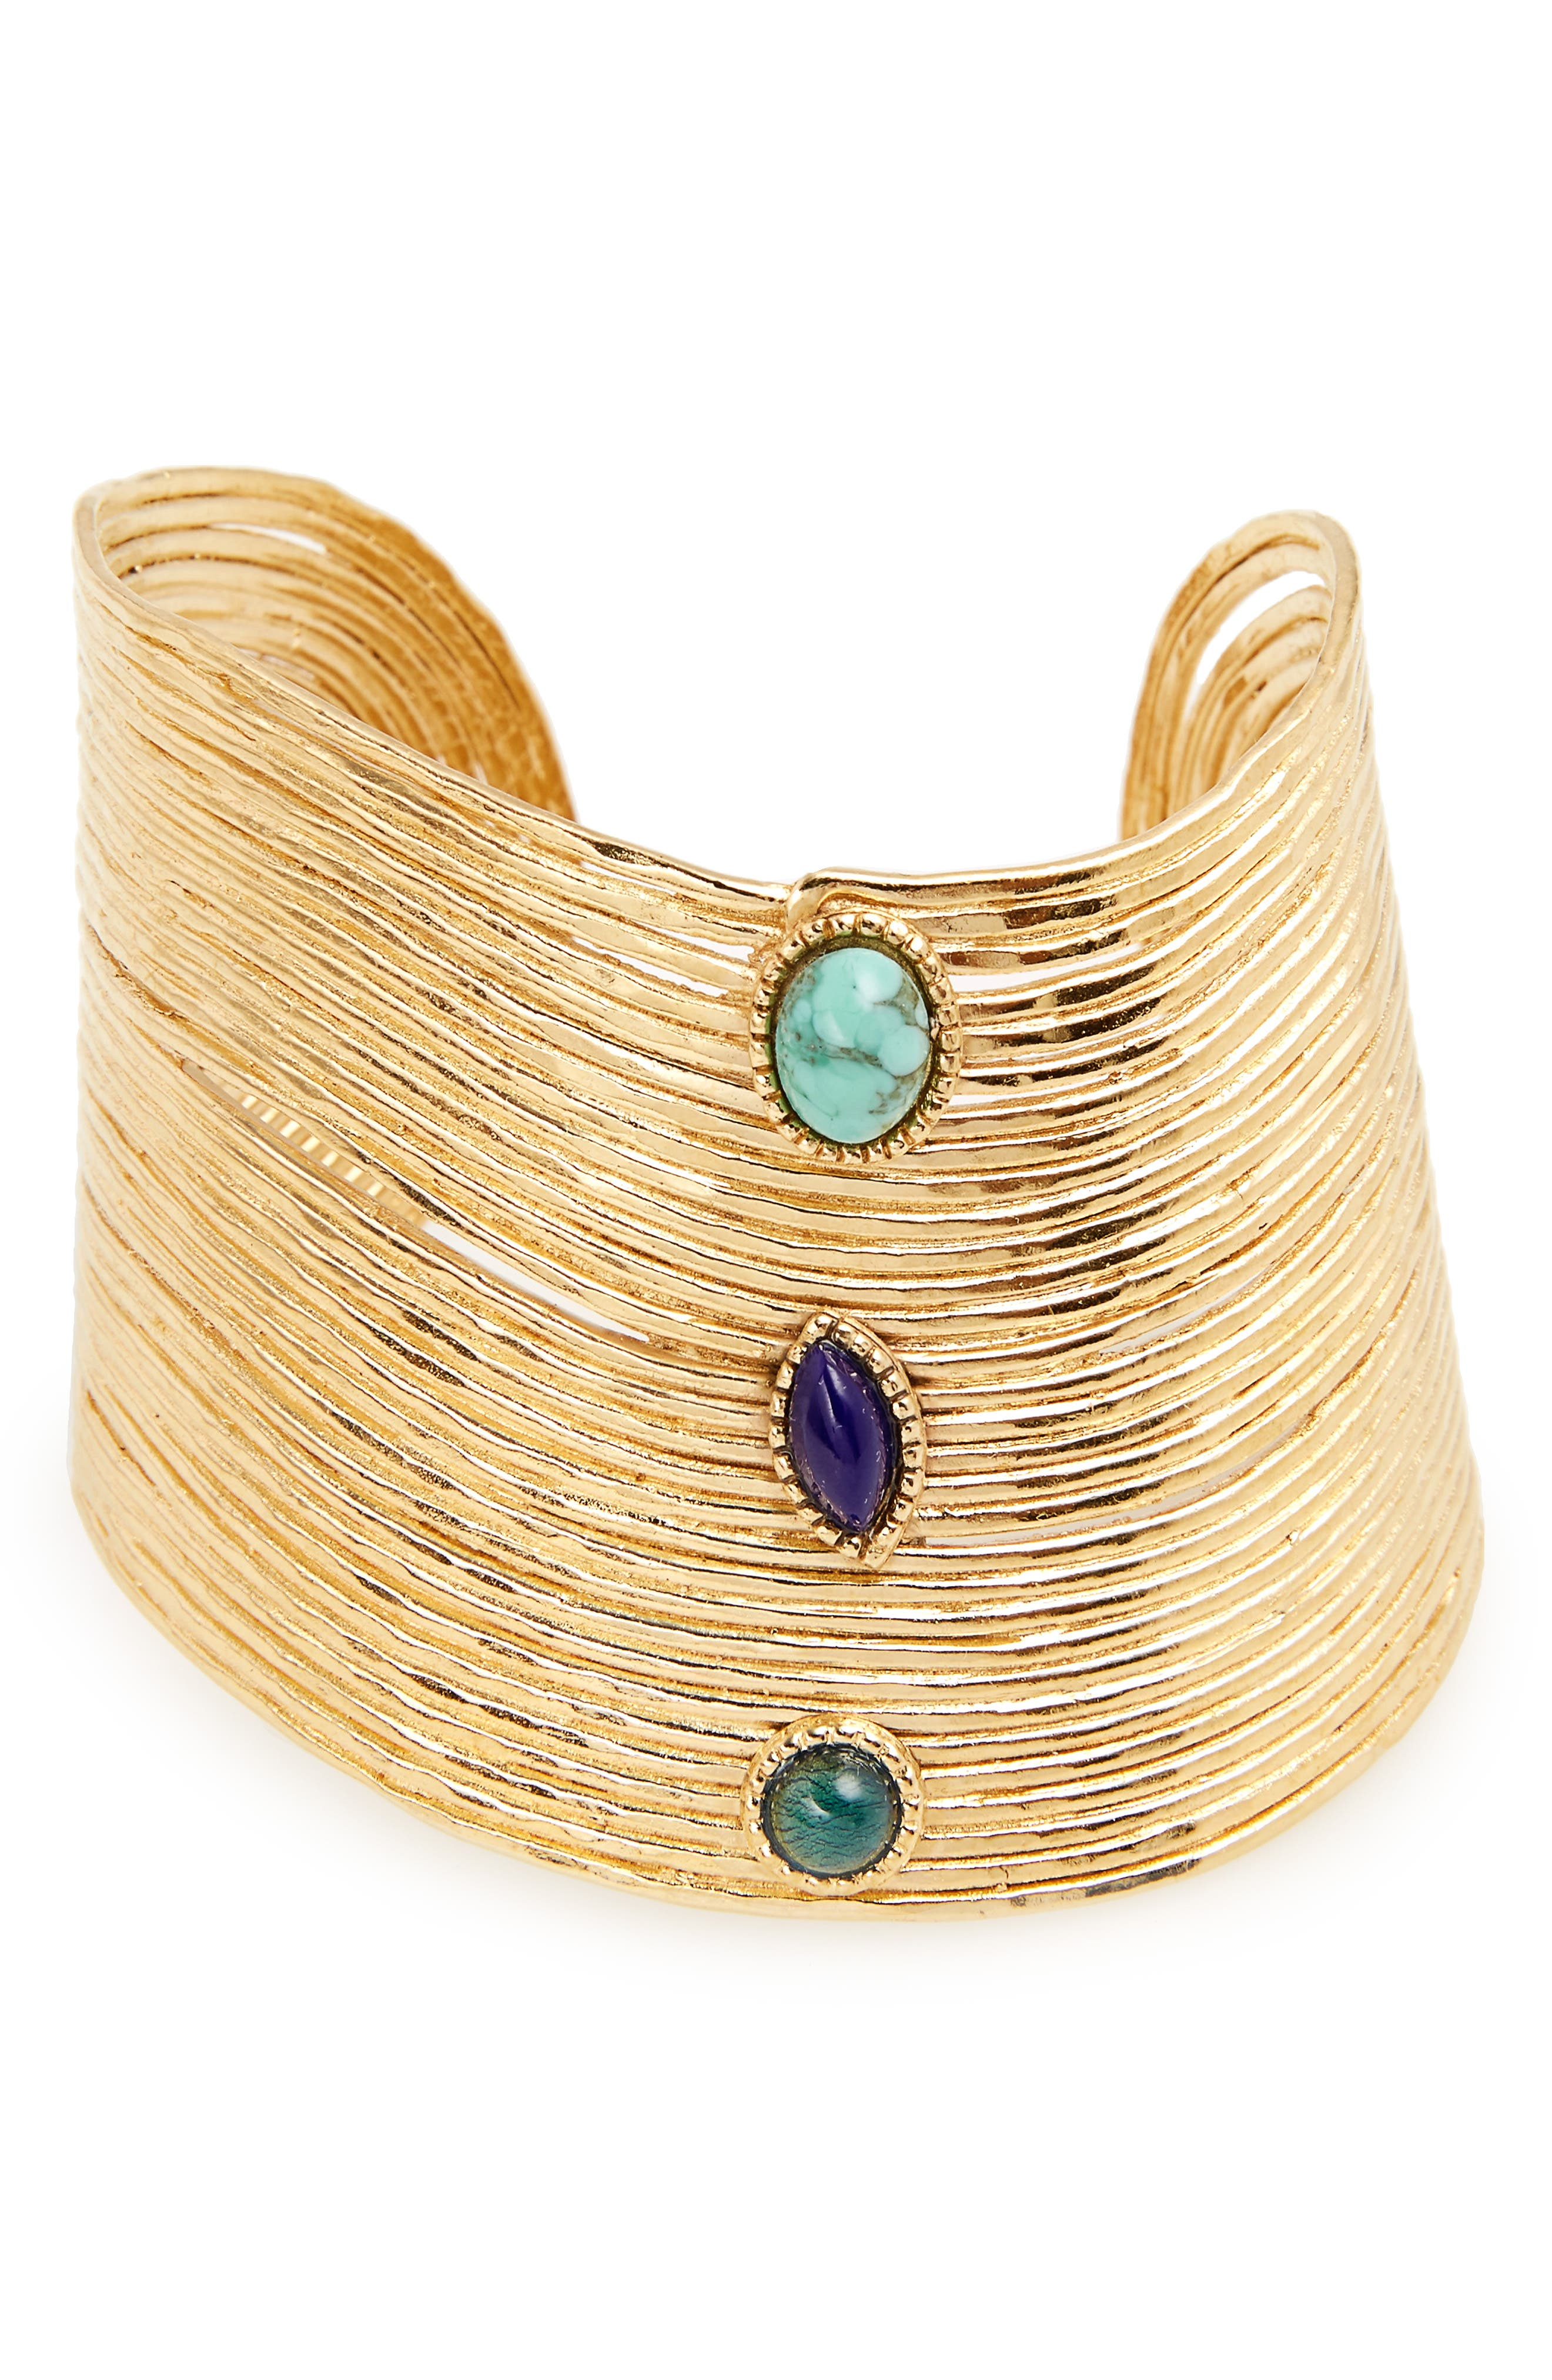 Cabochon Cuff,                         Main,                         color, Blue Turquoise/ Gold